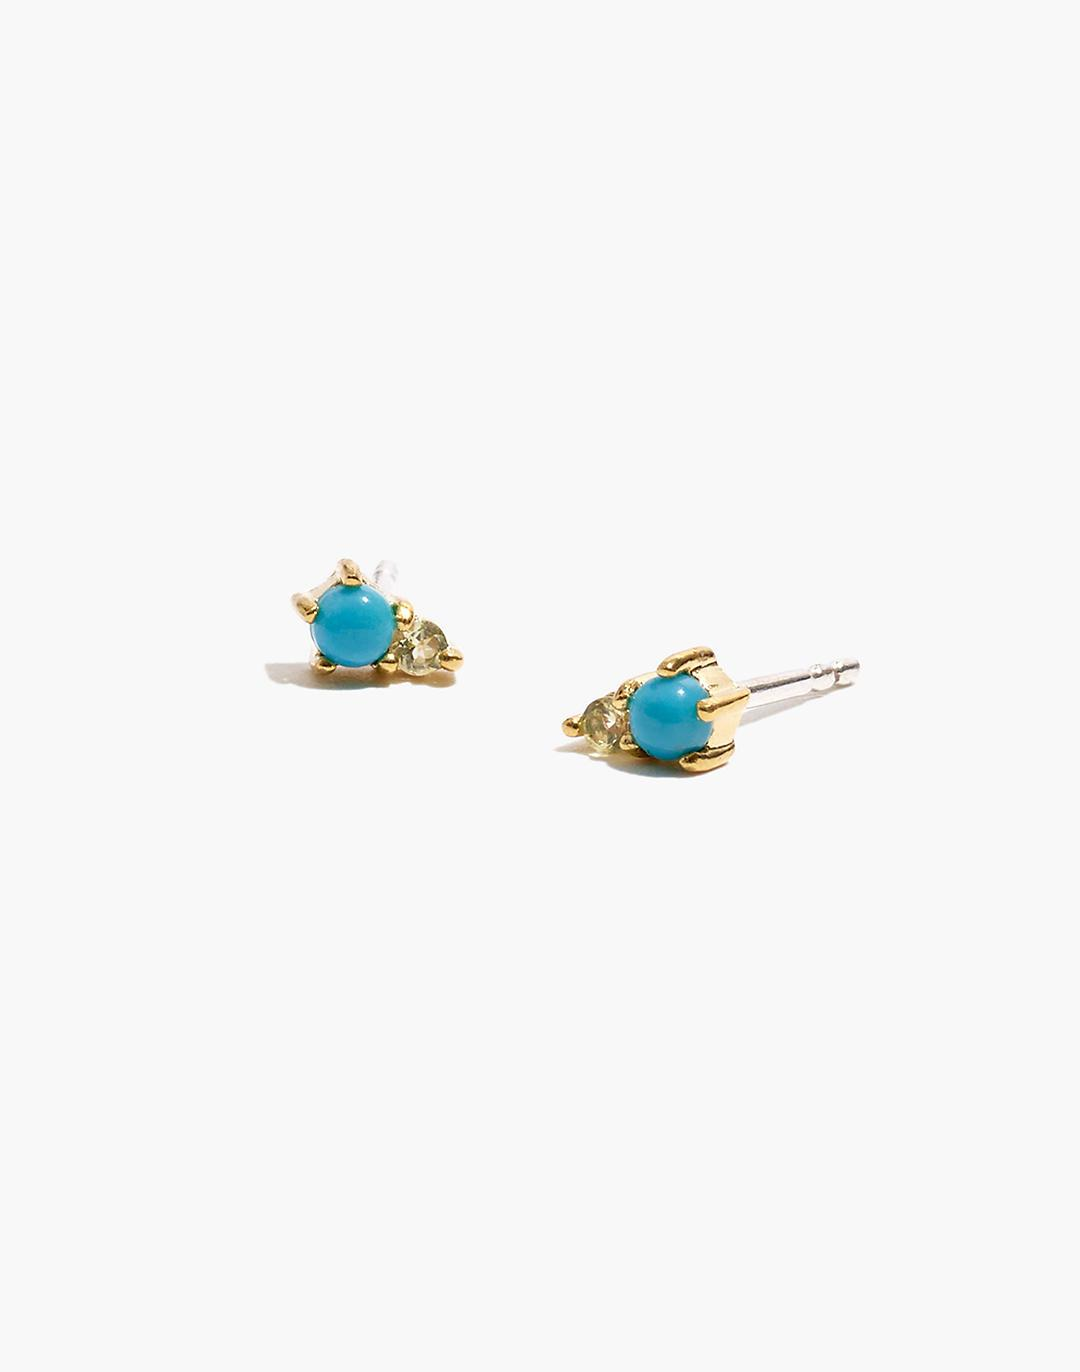 Delicate Collection Demi-Fine 14k Plated Turquoise and Topaz Stud Earrings